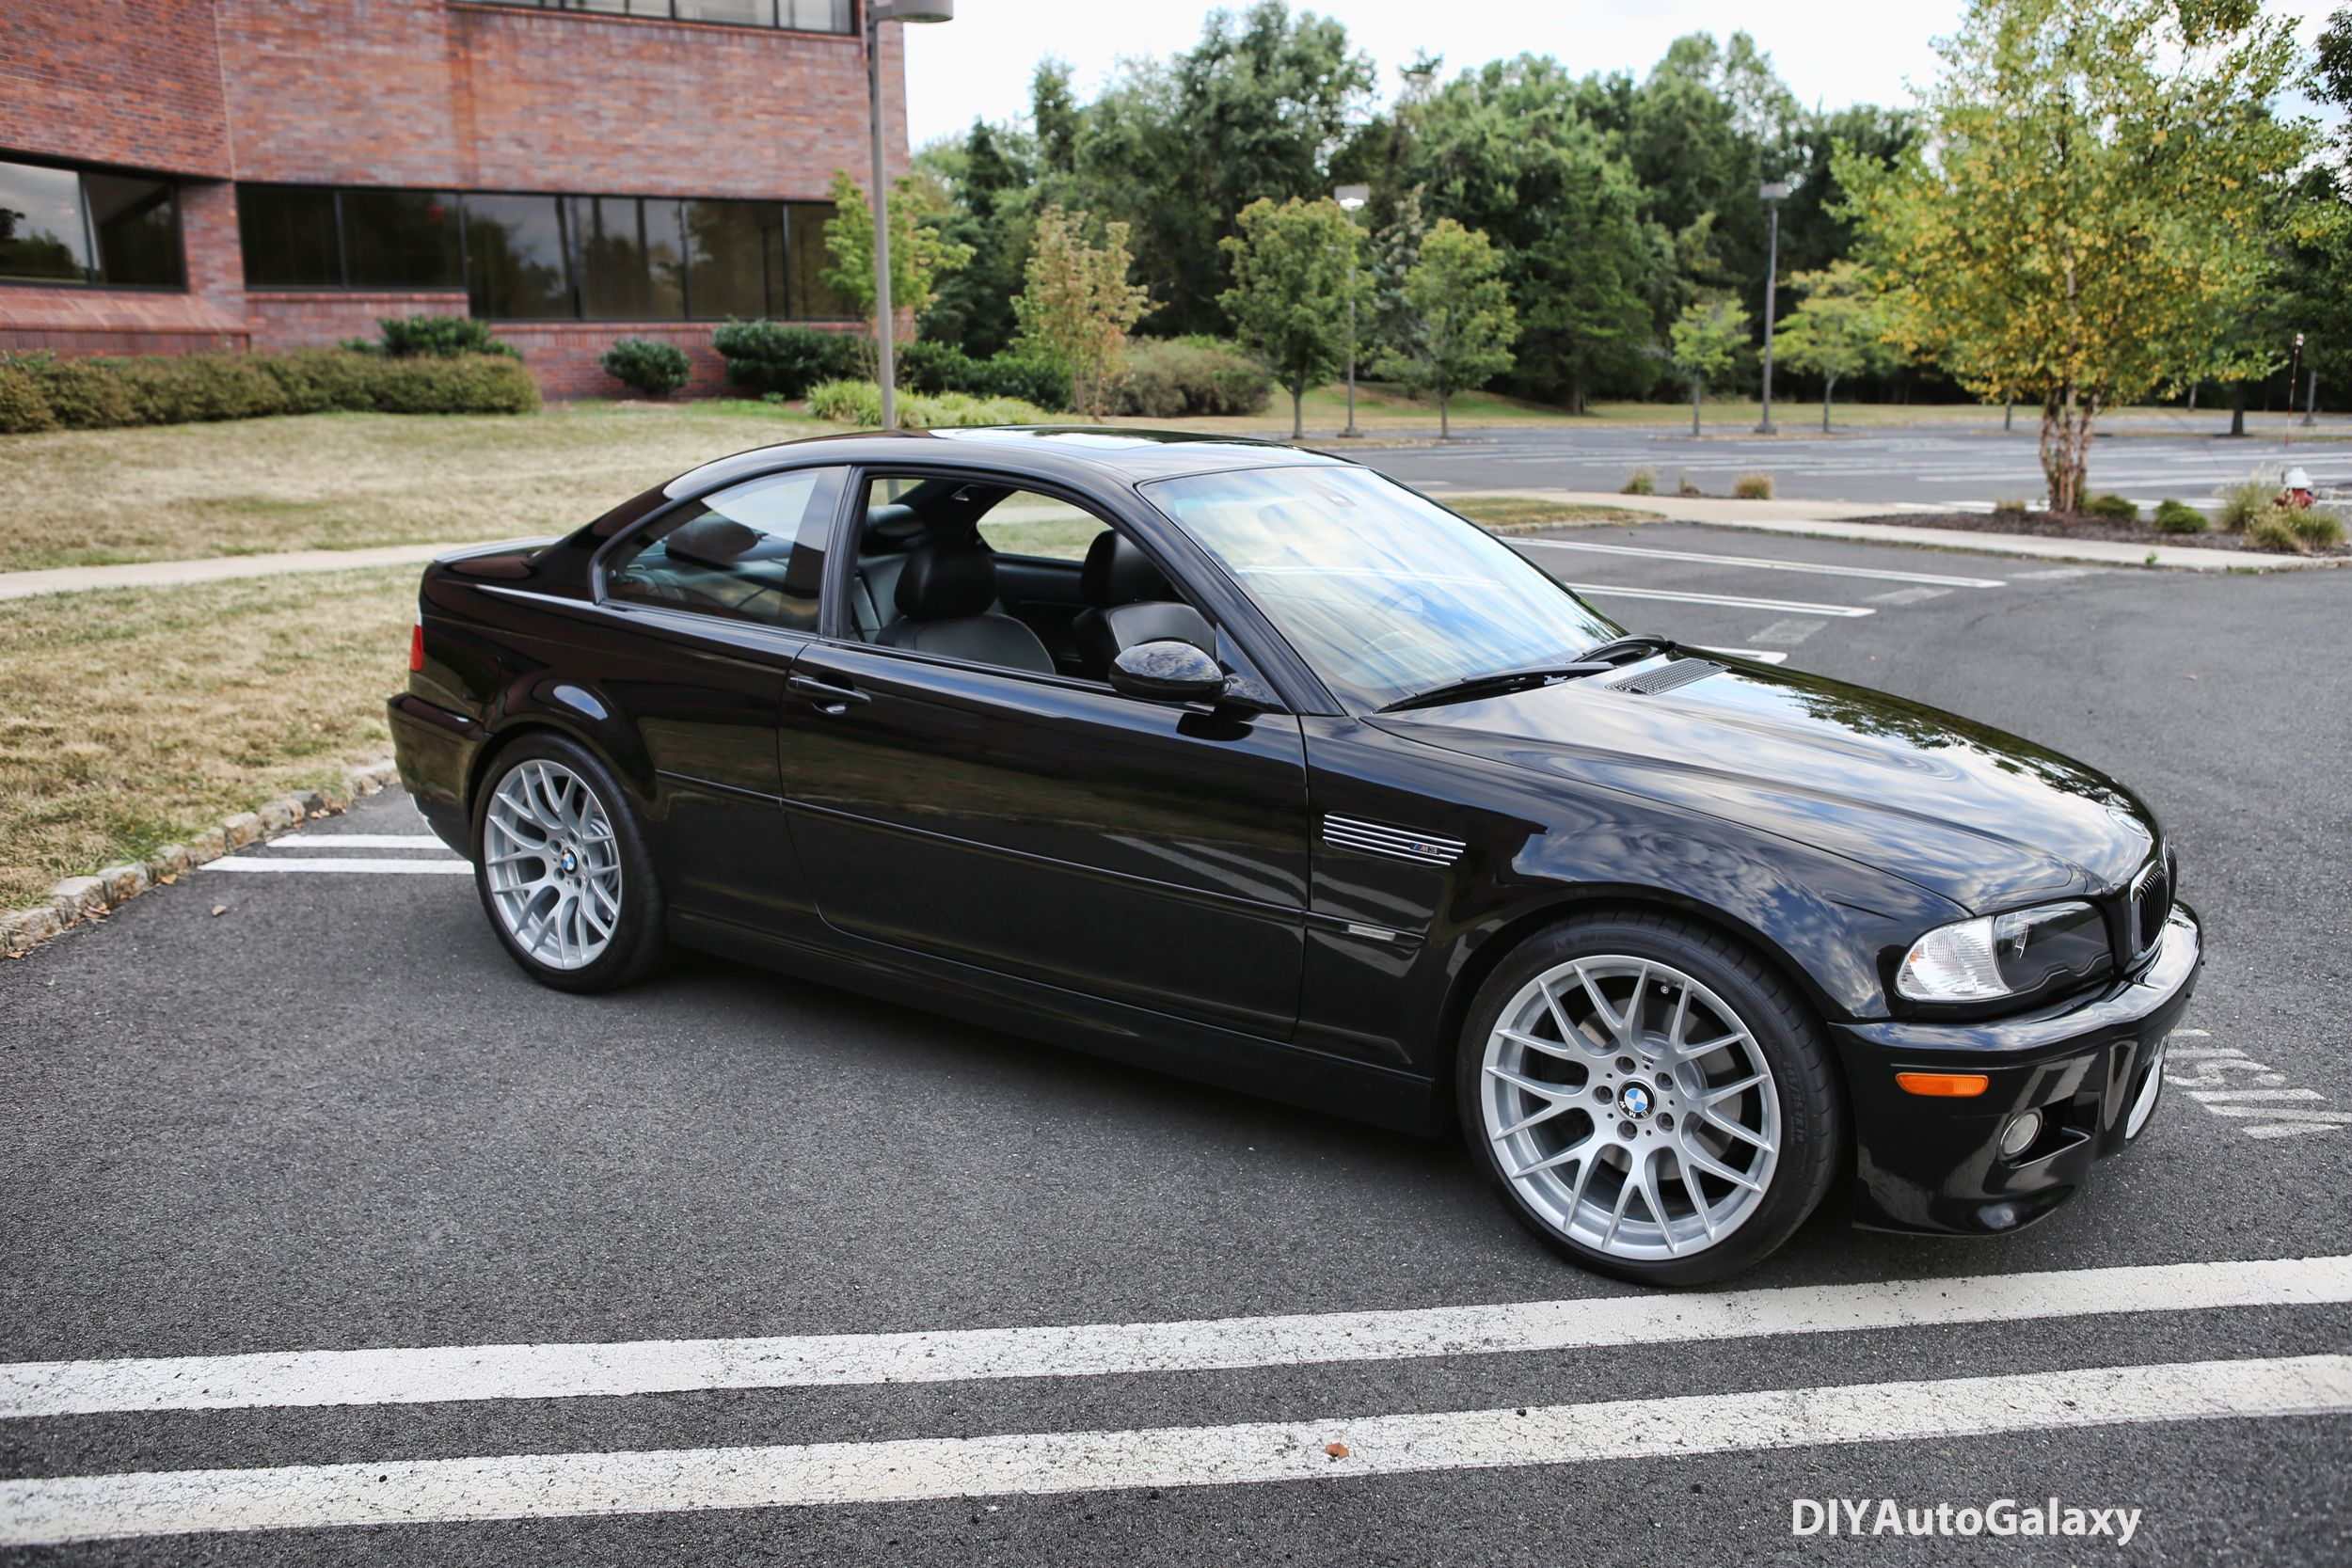 This Jet Black Bmw E46 M3 Is Just Mean Sitting On 19 1m Wheels